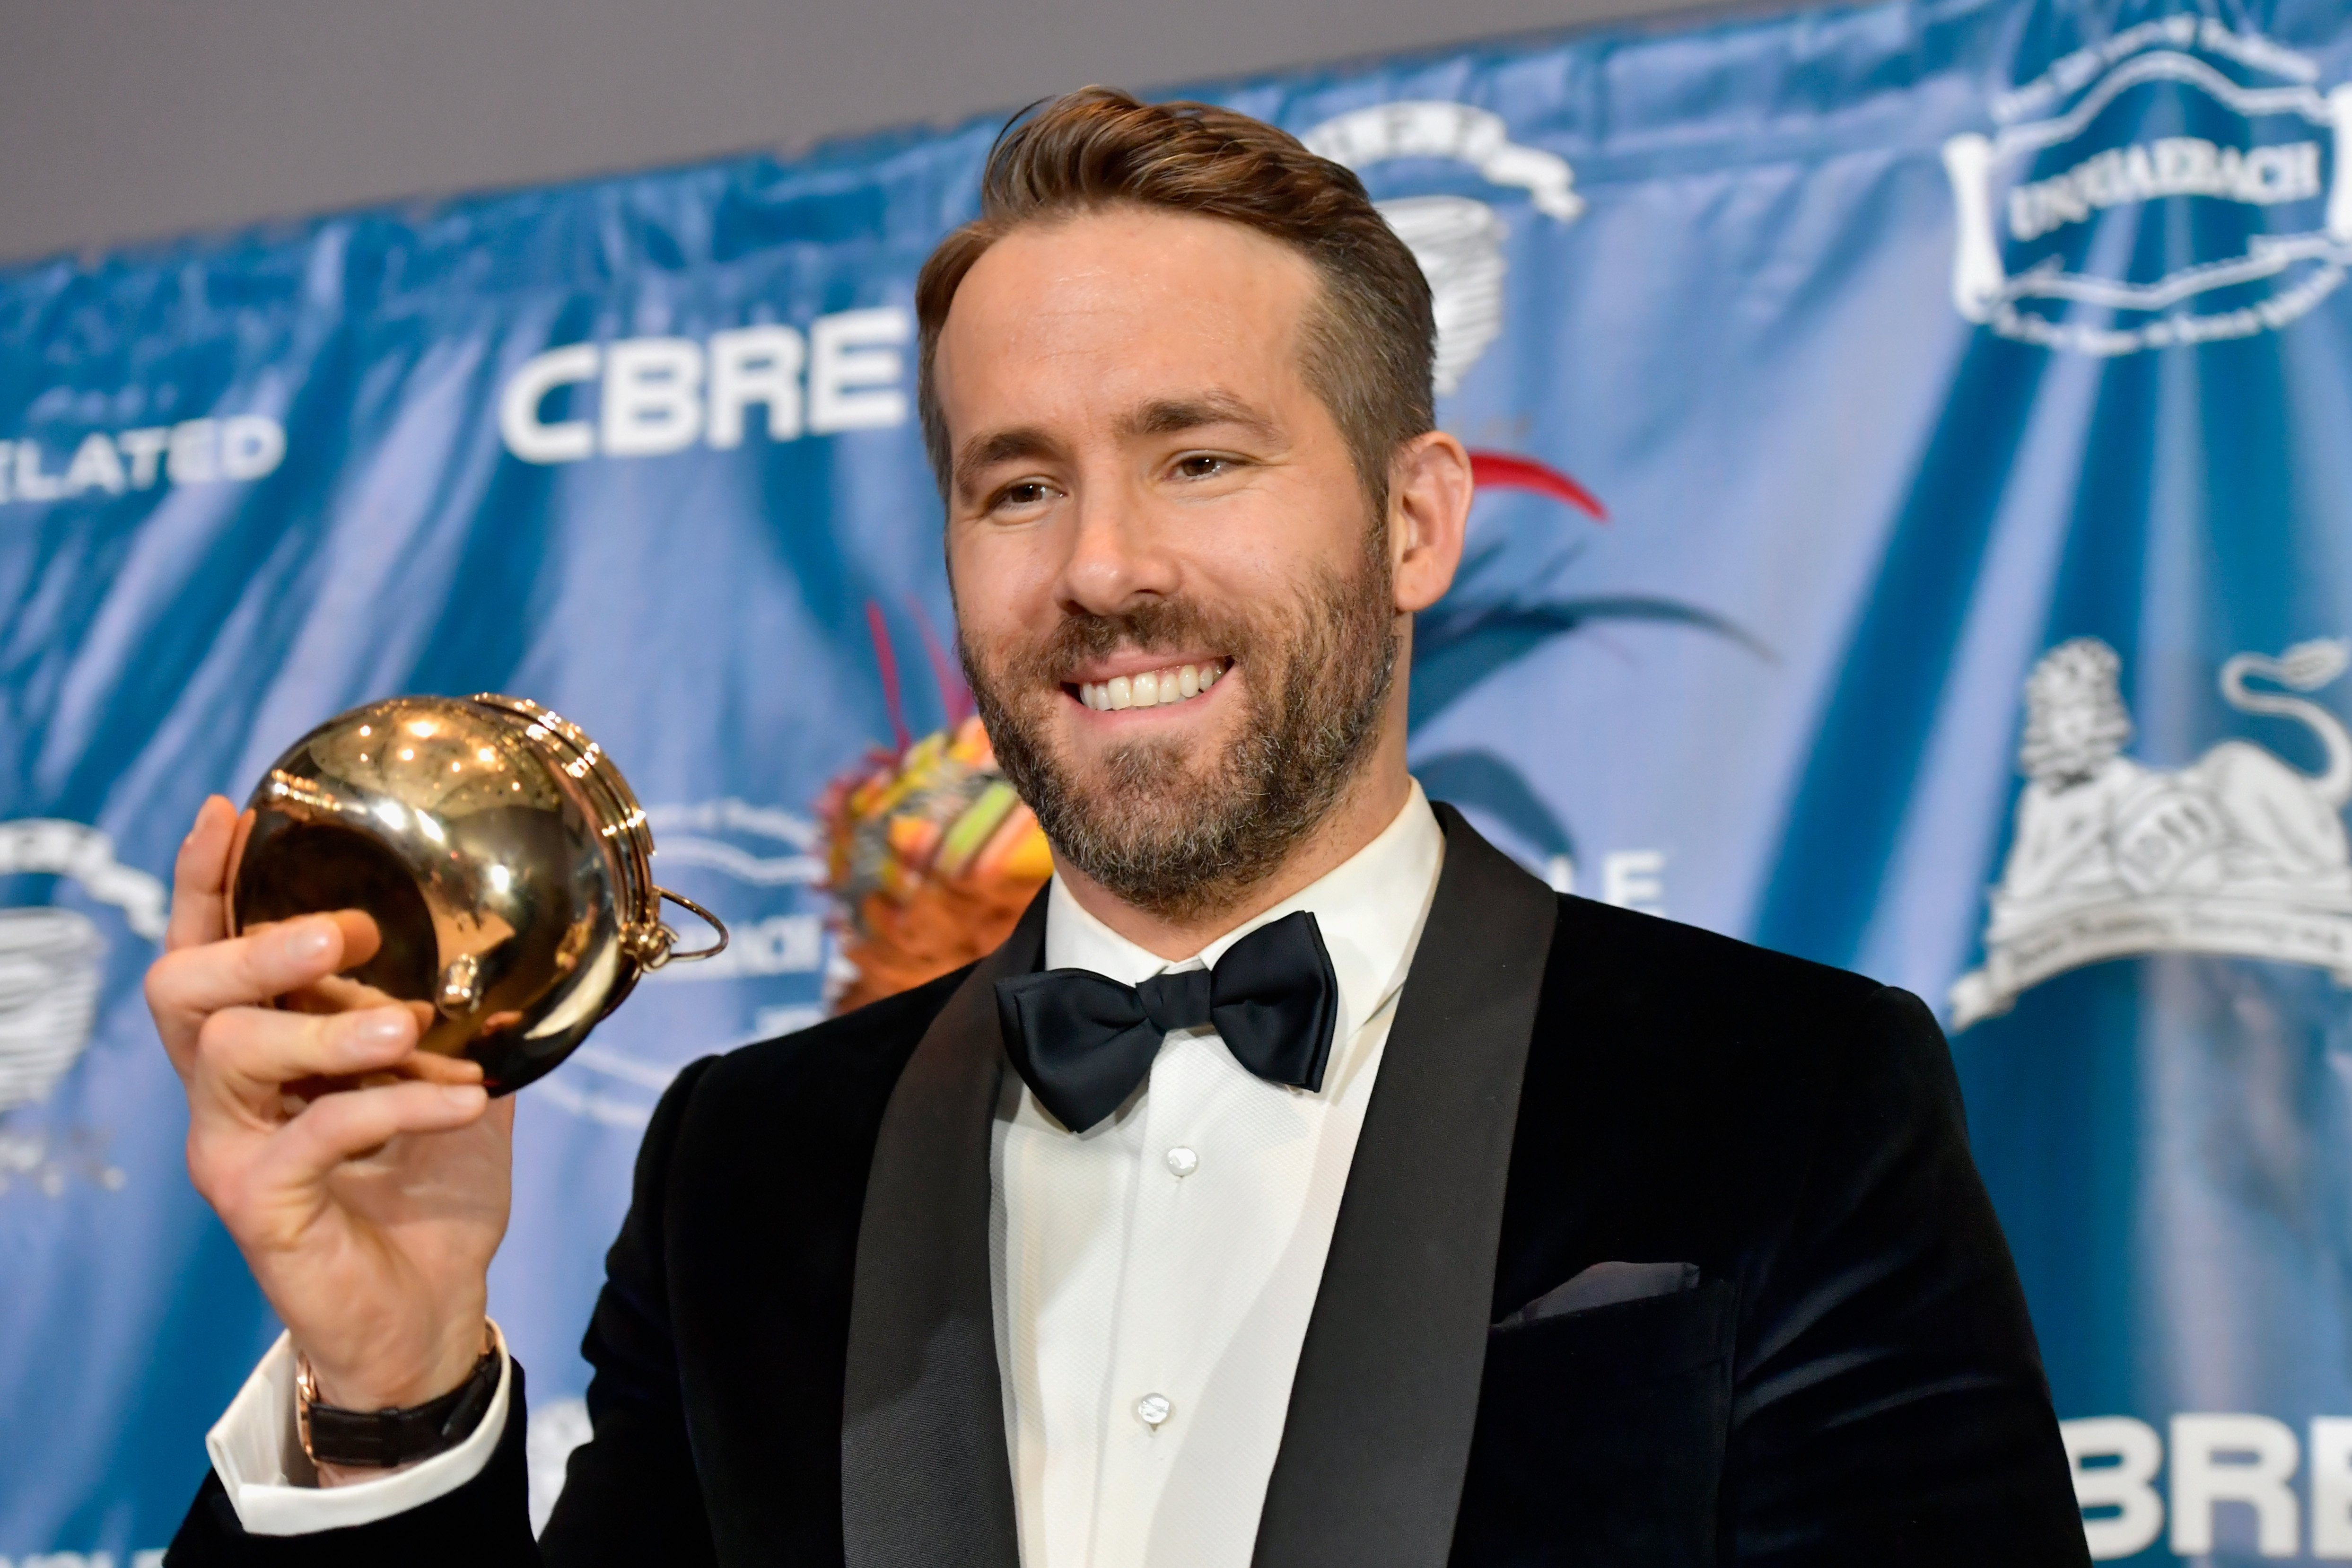 Hasty Pudding Theatricals honors Ryan Reynolds as 2017 Man Of The Year on February 3, 2017 in Cambridge, Massachusetts